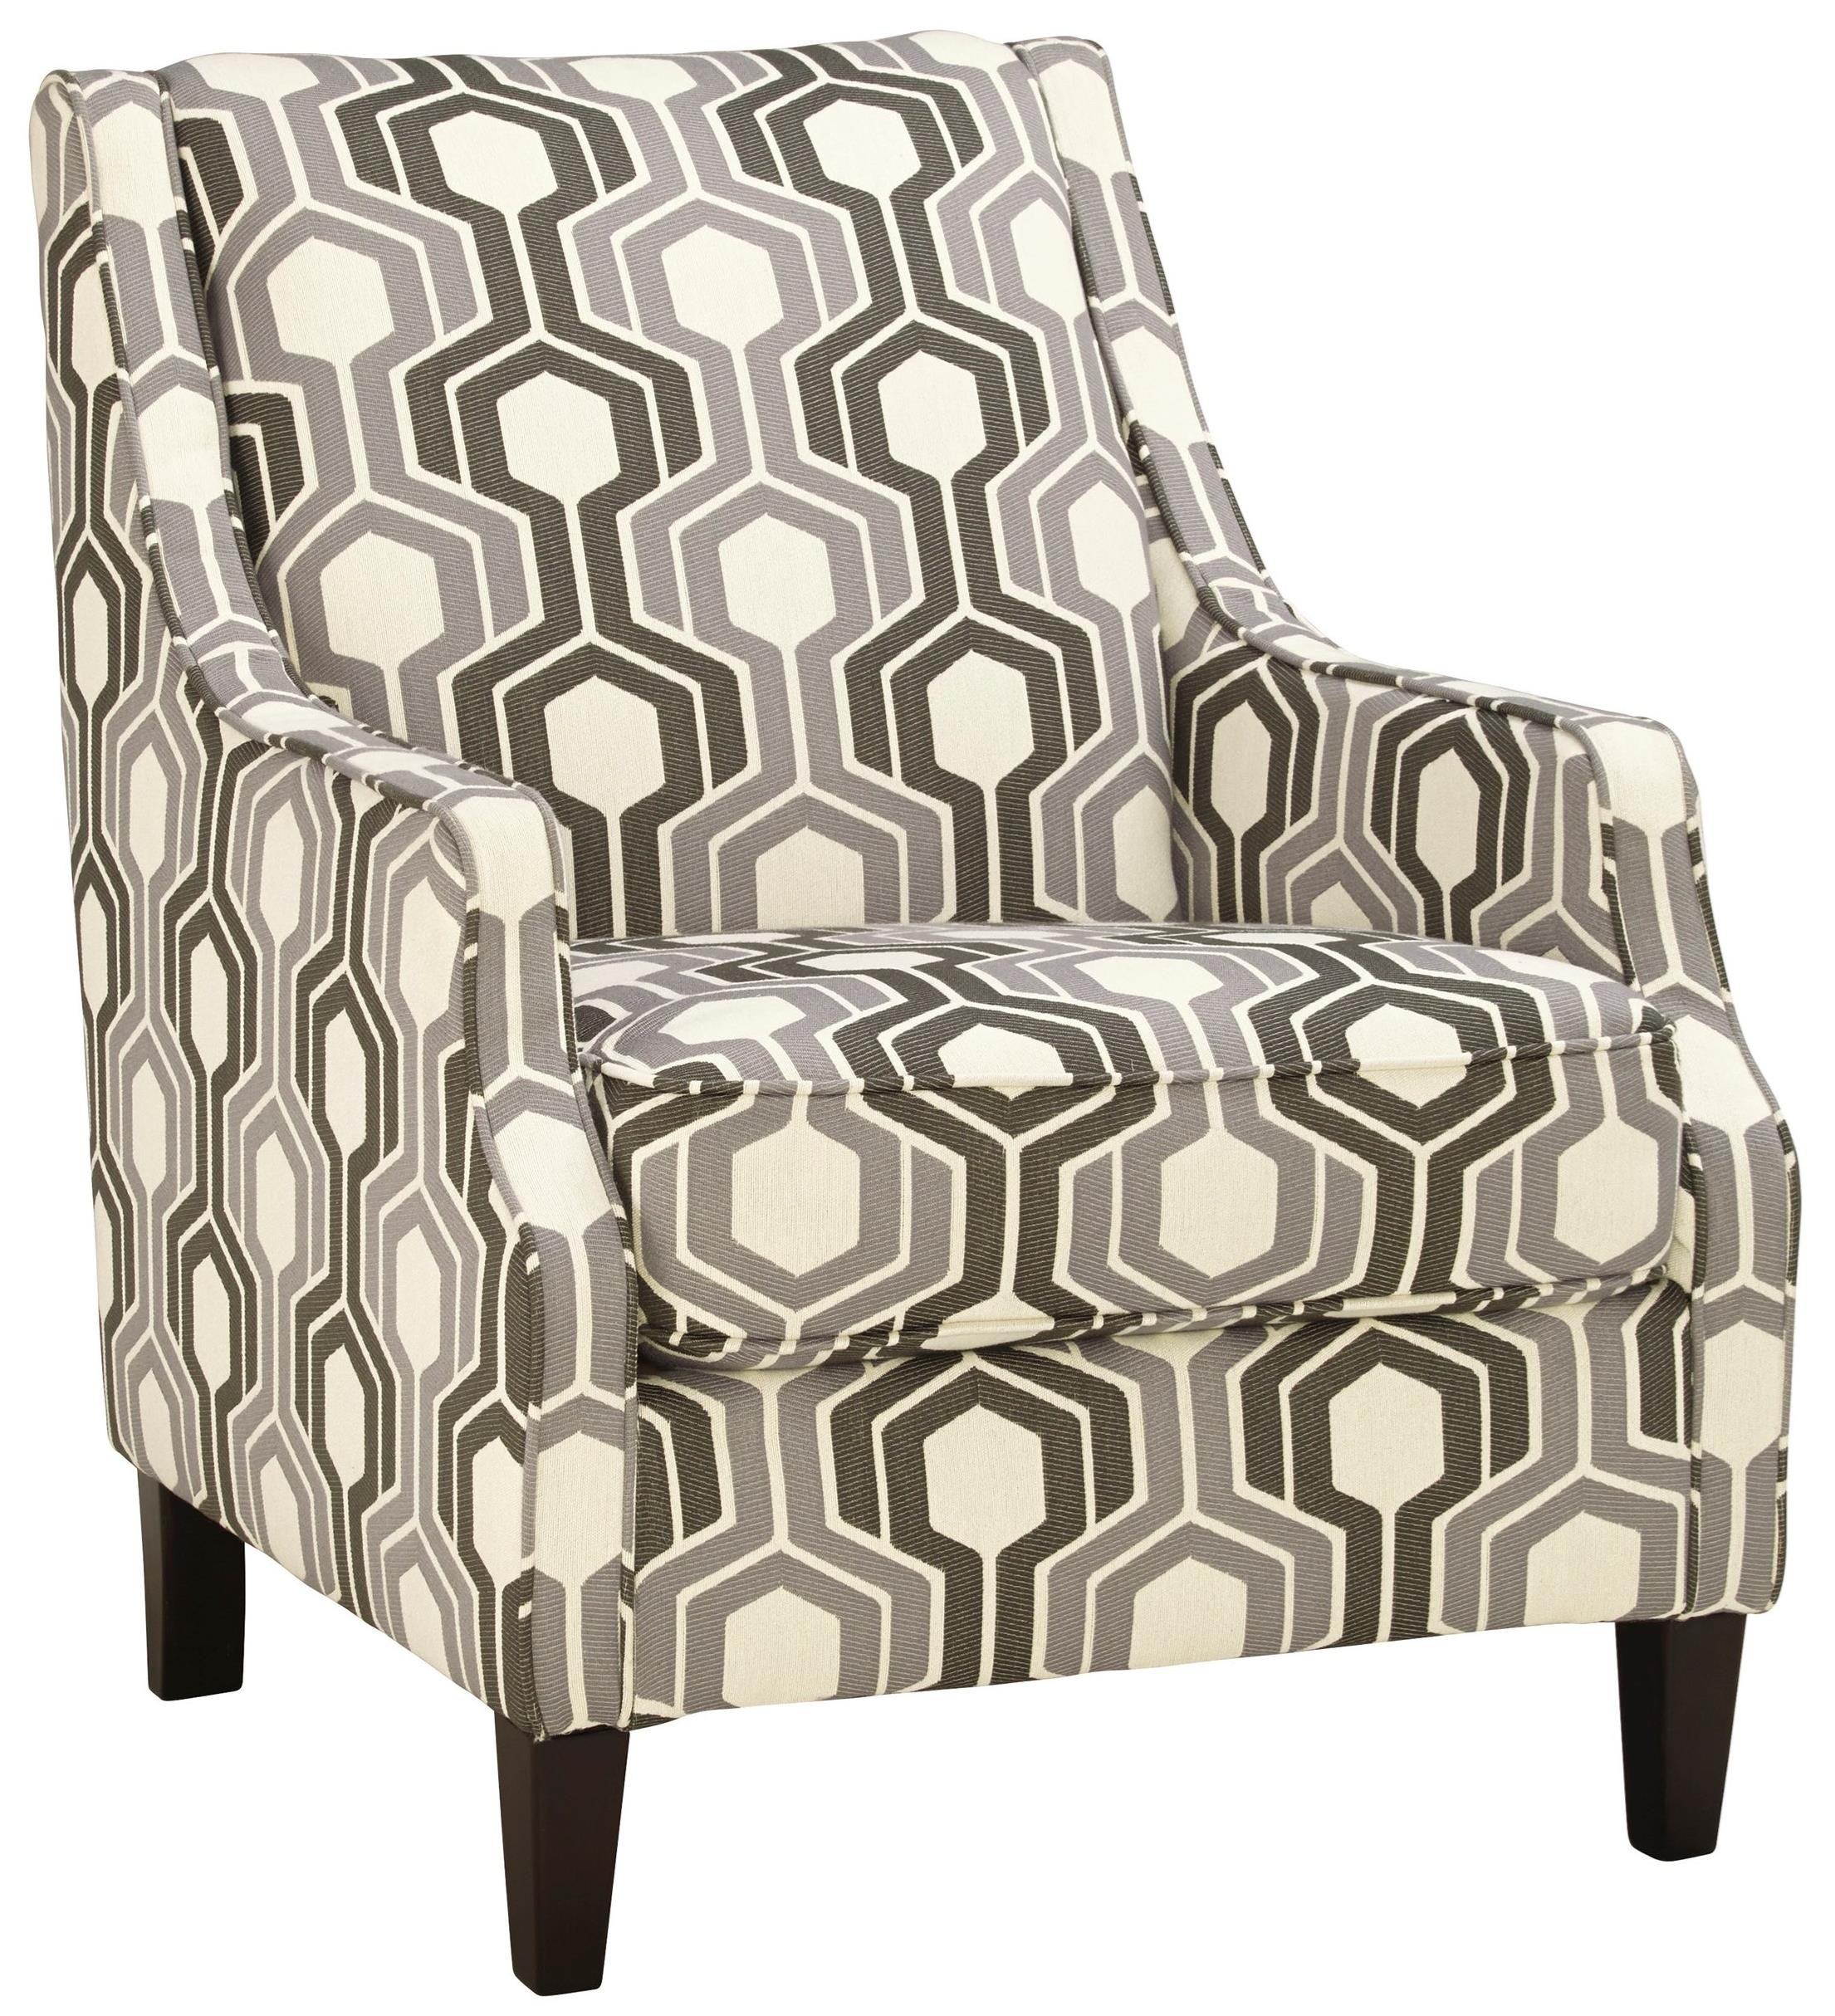 Benchcraft Guillerno Accent Chair - Item Number: 7180121